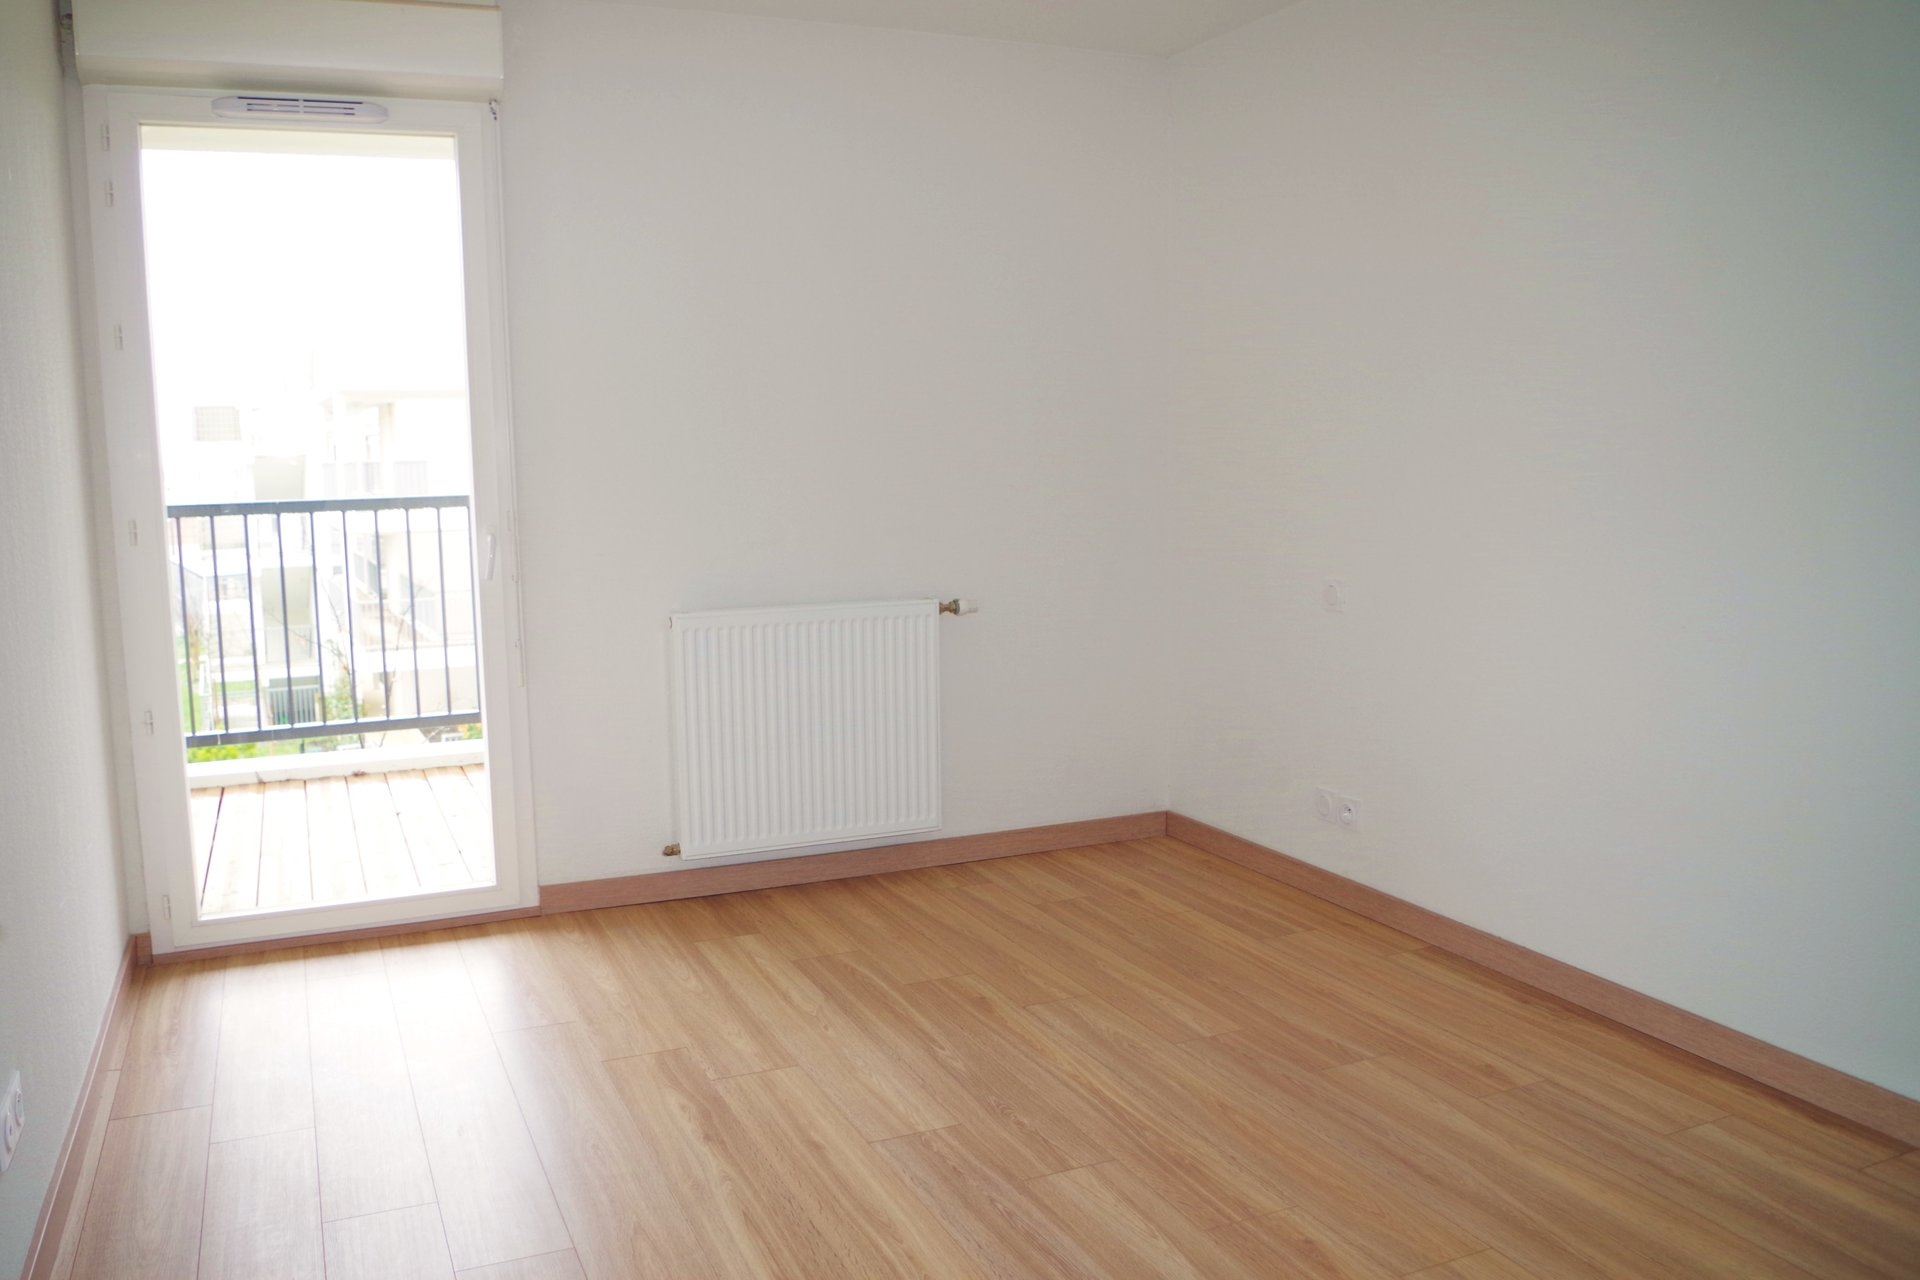 Appartement T2 - 38 m² - COLOMIERS RAMASSIERS